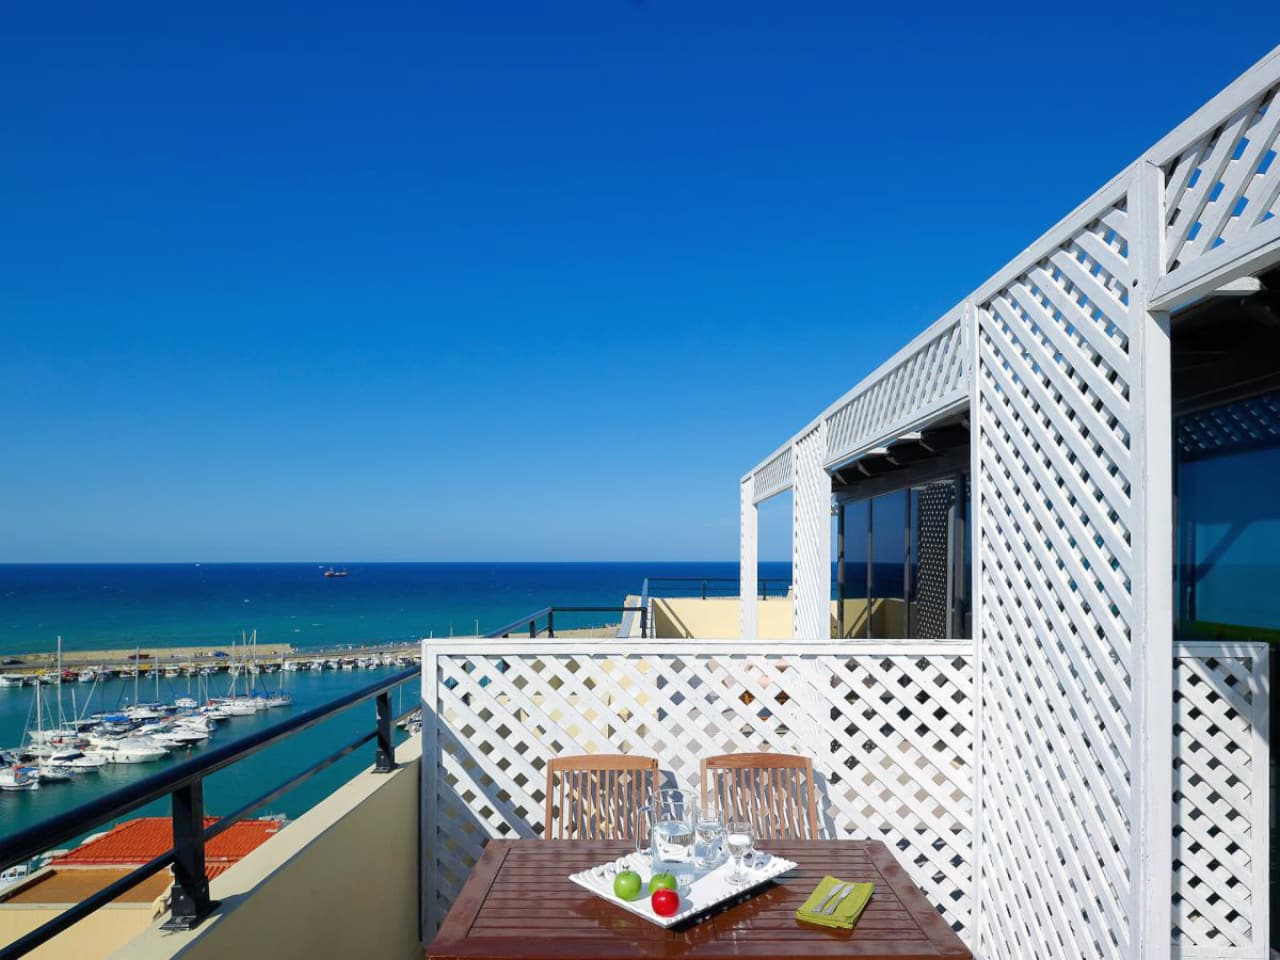 Lato Boutique Hotel In Heraklion Crete Is Officially A 4 Star